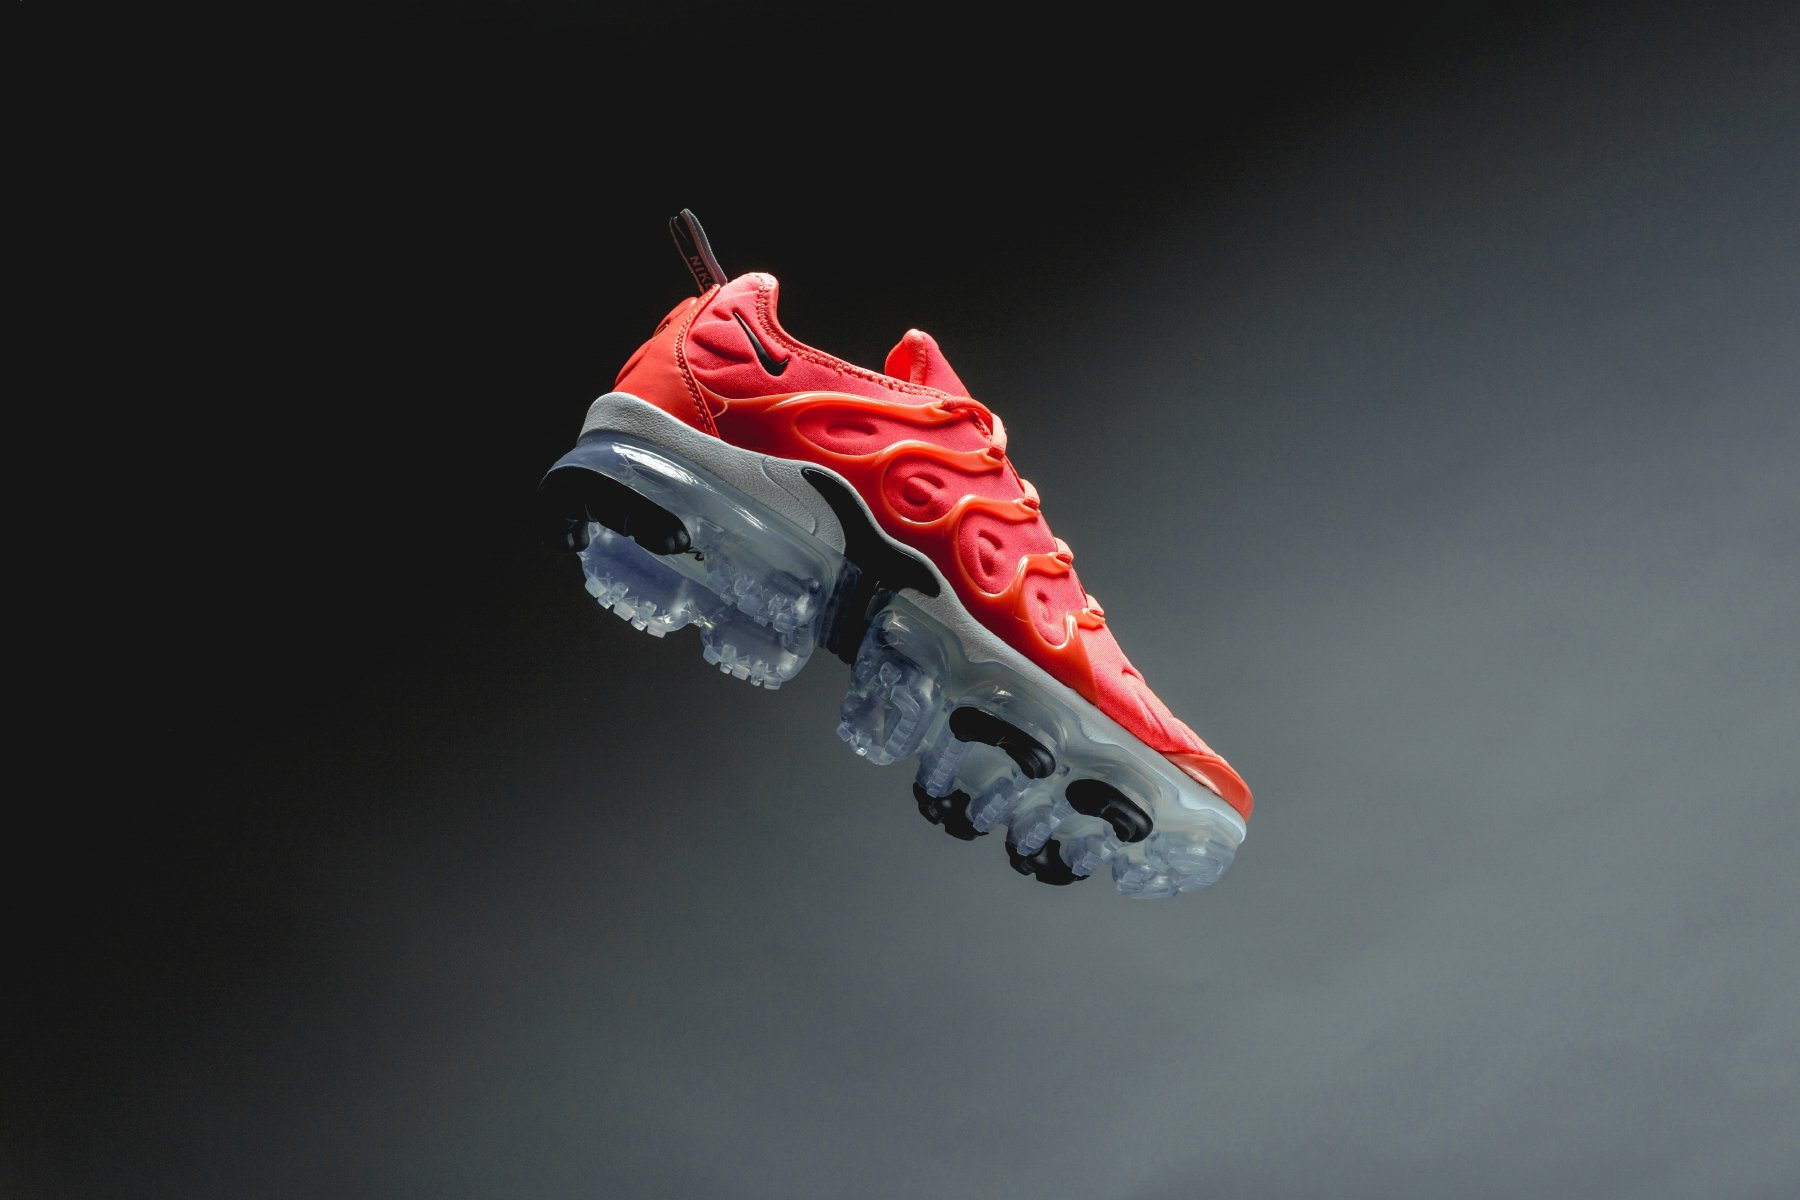 Nike Goes In All Guns Blazing With the Vapormax 2019